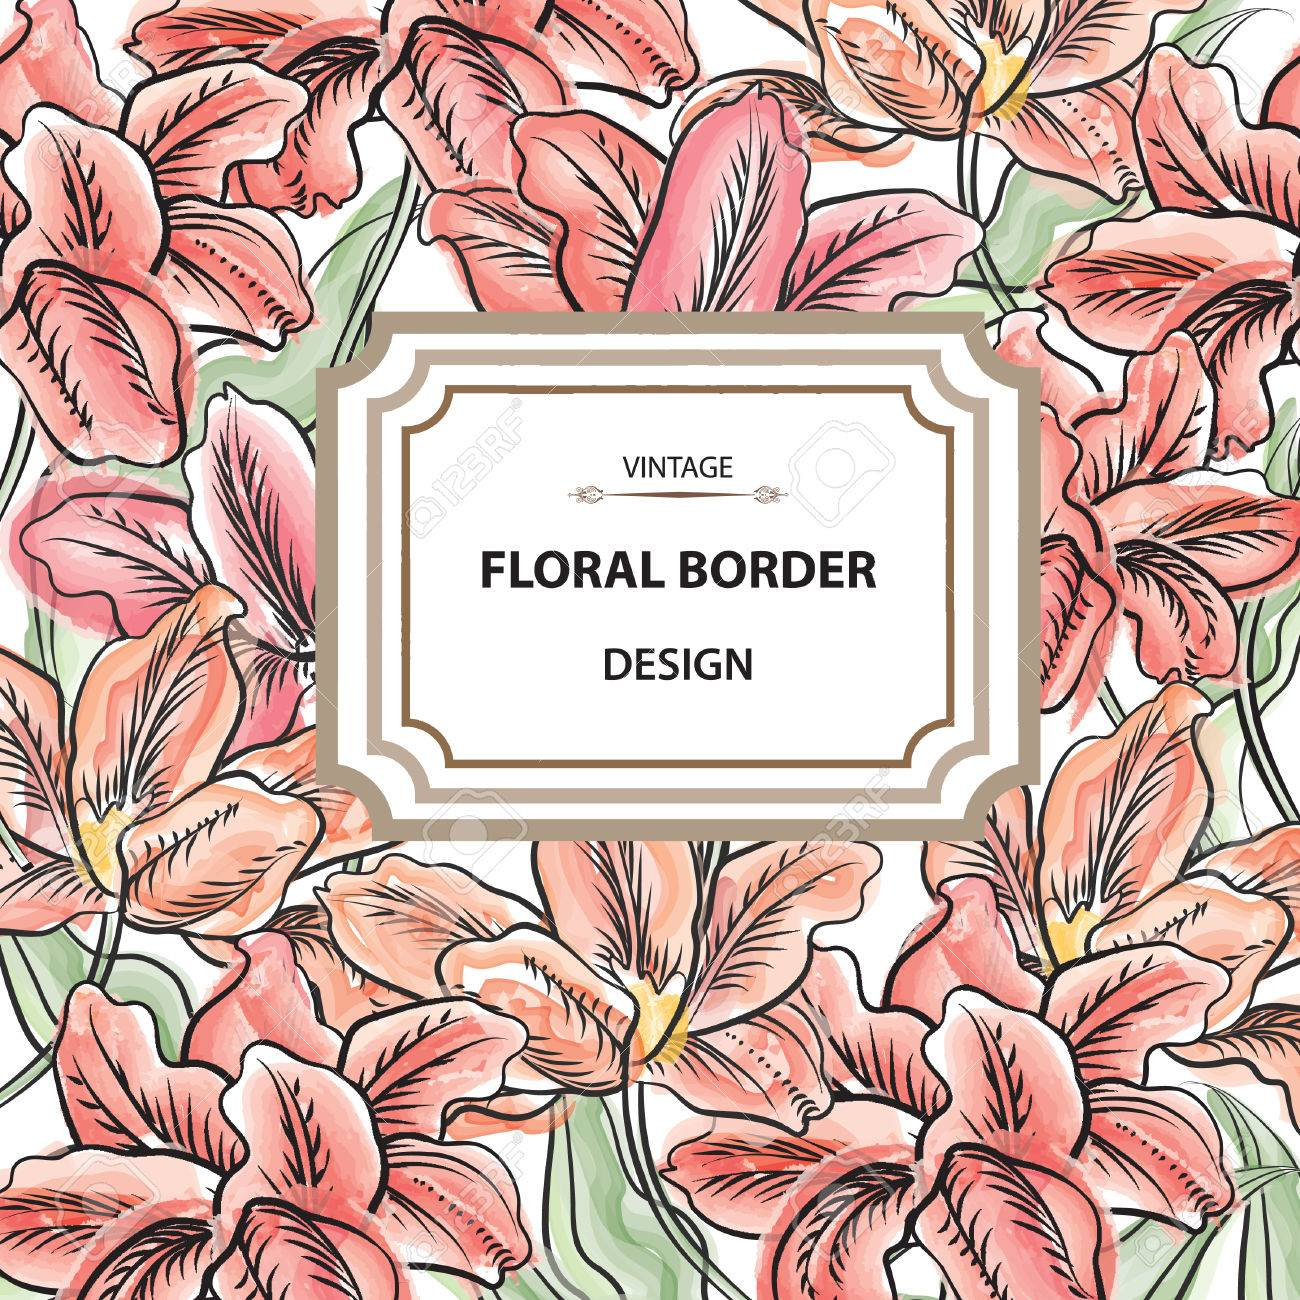 Floral Border Flower Bouquet Background Vintage Flourish Spring Card Or Cover Stock Vector